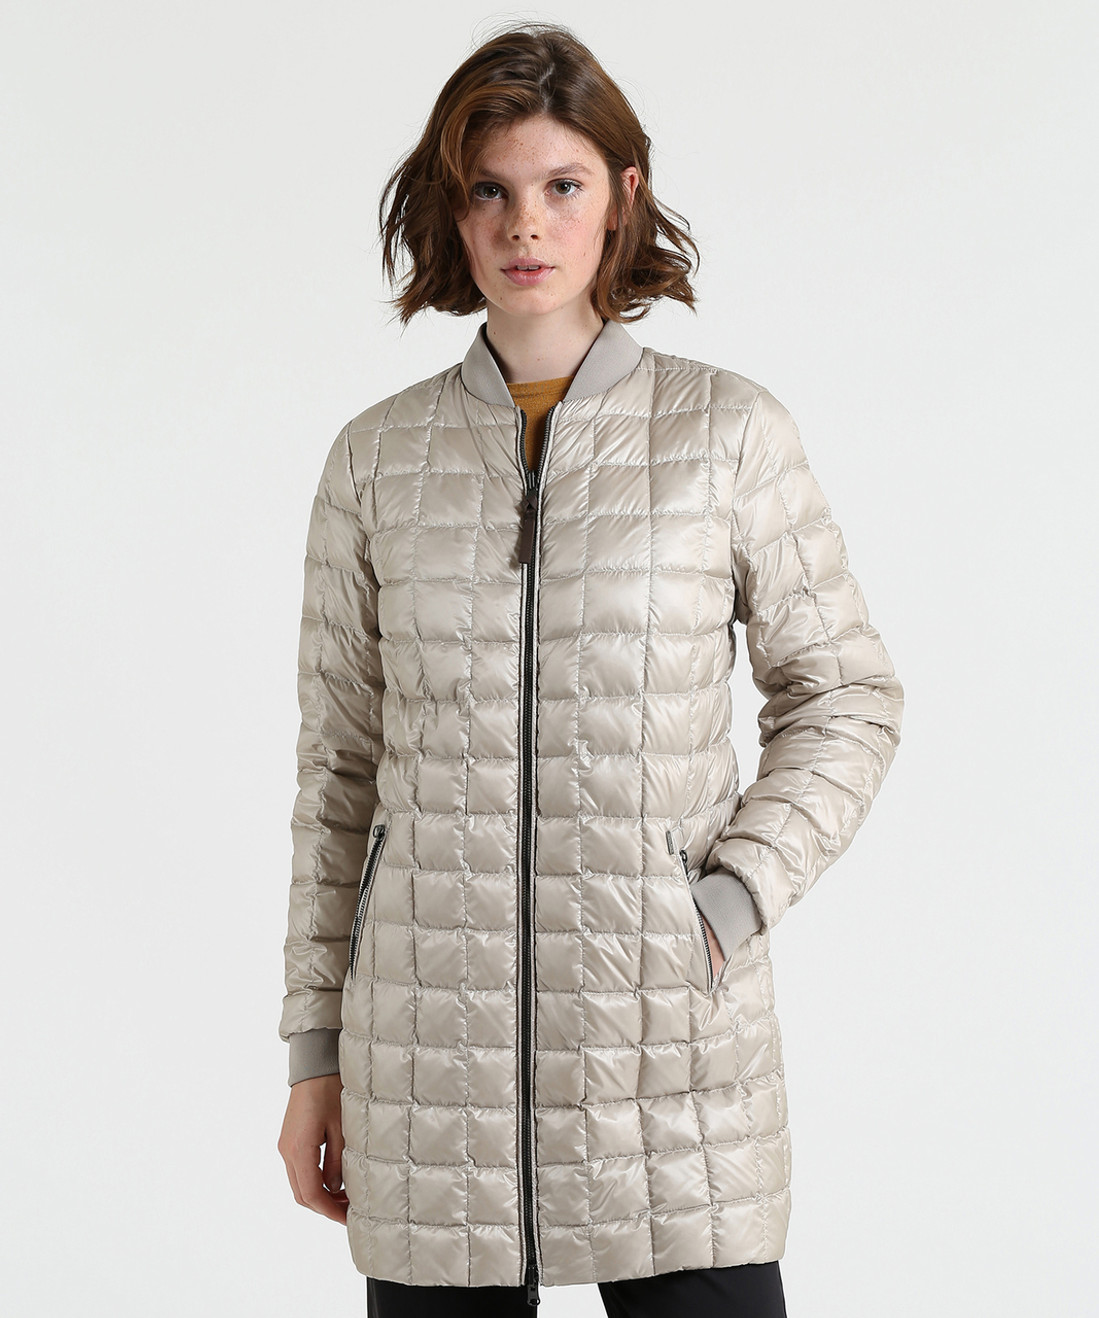 Women's Reversible Long Bomber Down Coat - John Rich & Bros.